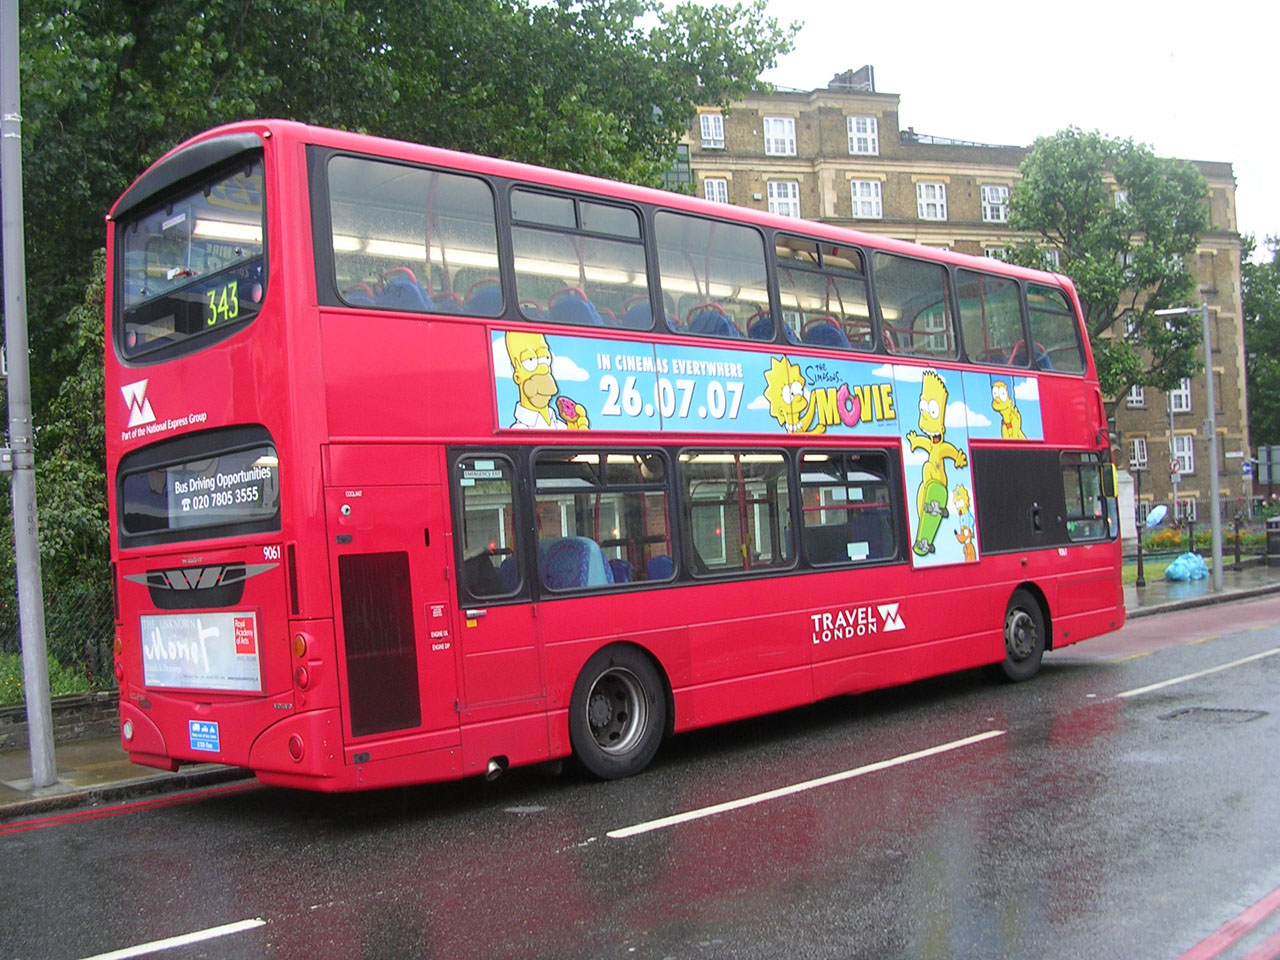 une photo de londres par jour bus rouge symbole de londres. Black Bedroom Furniture Sets. Home Design Ideas